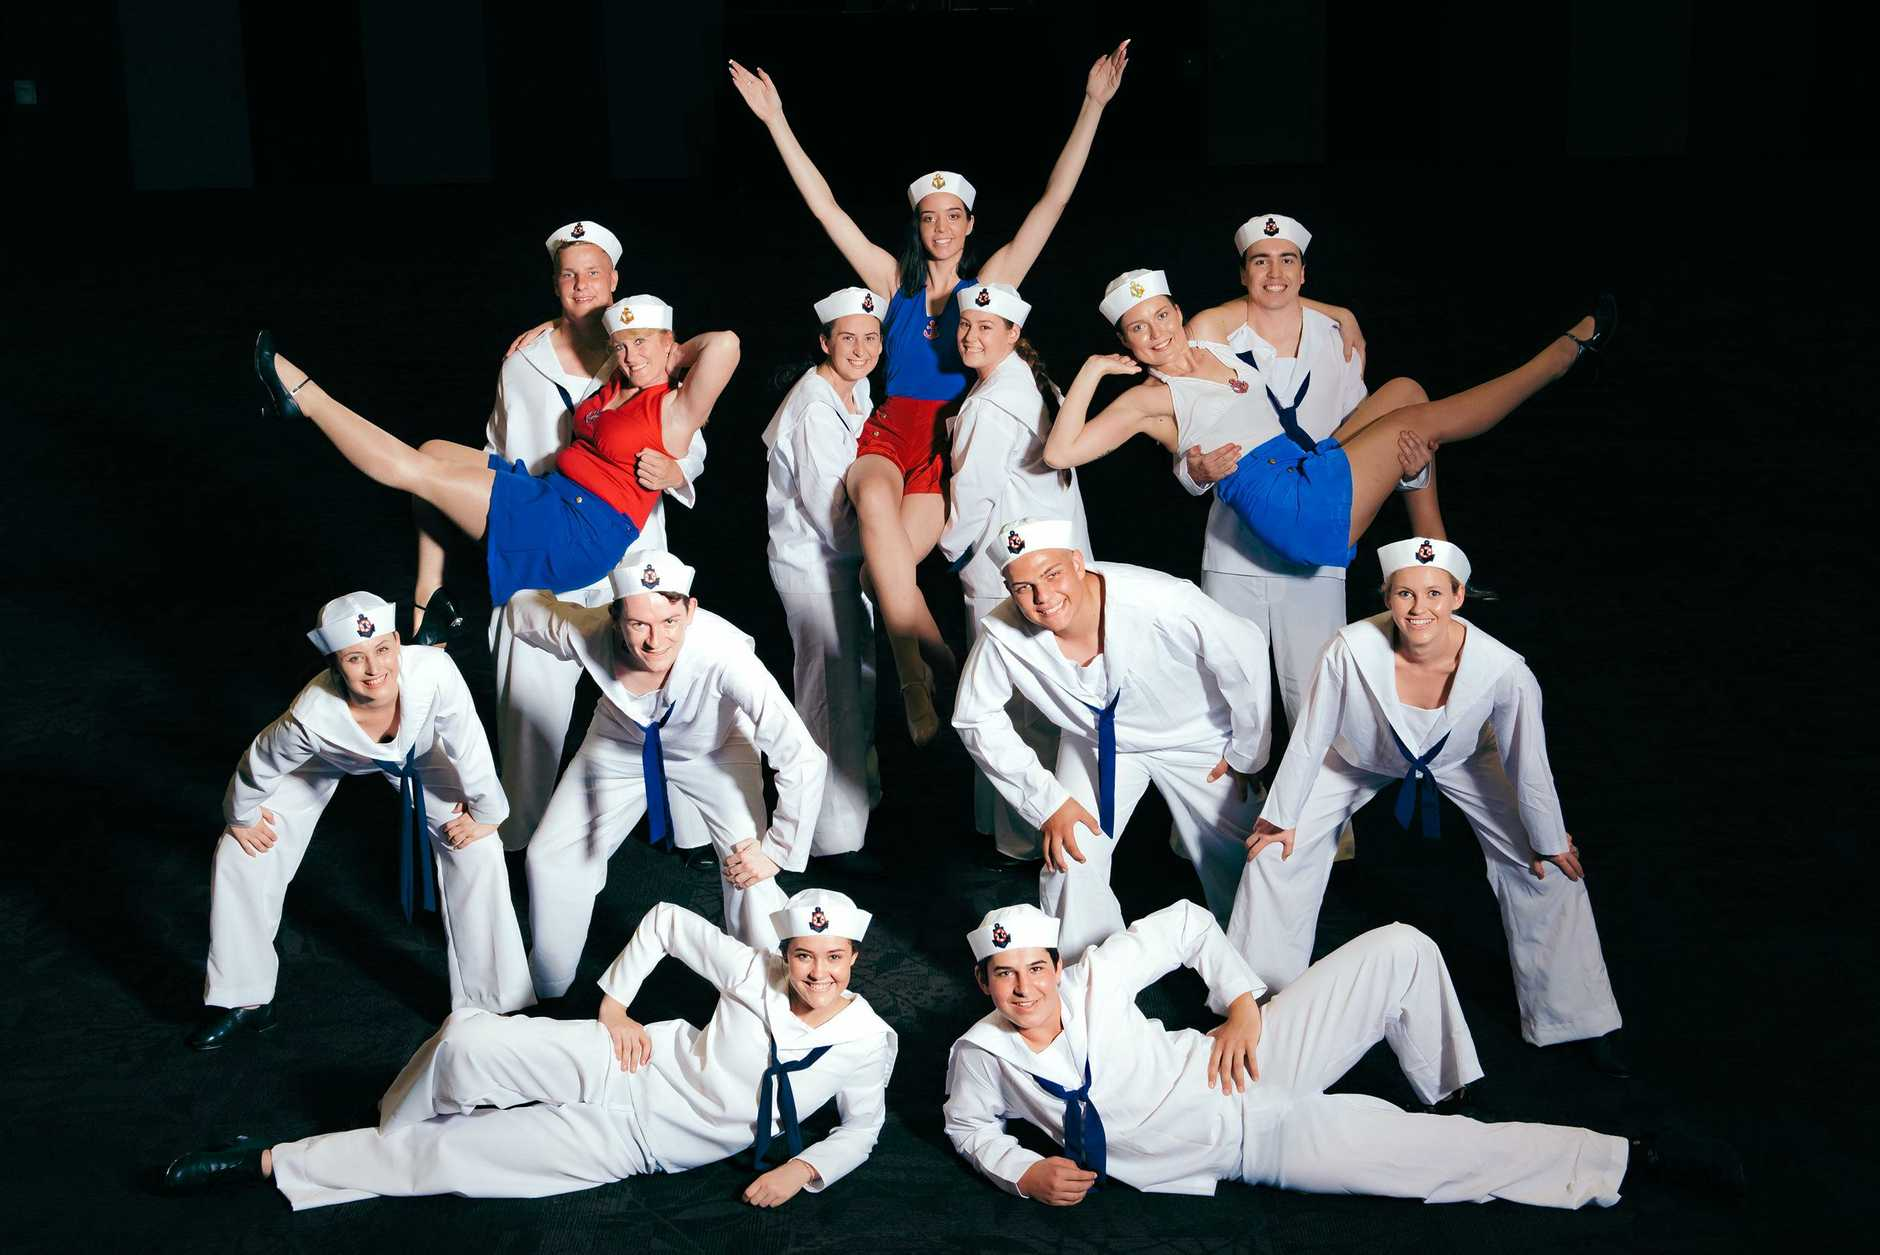 ALL ABOARD: Some of the cast from the community musical Anything Goes which is playing at the GECC from February 21 to 24.